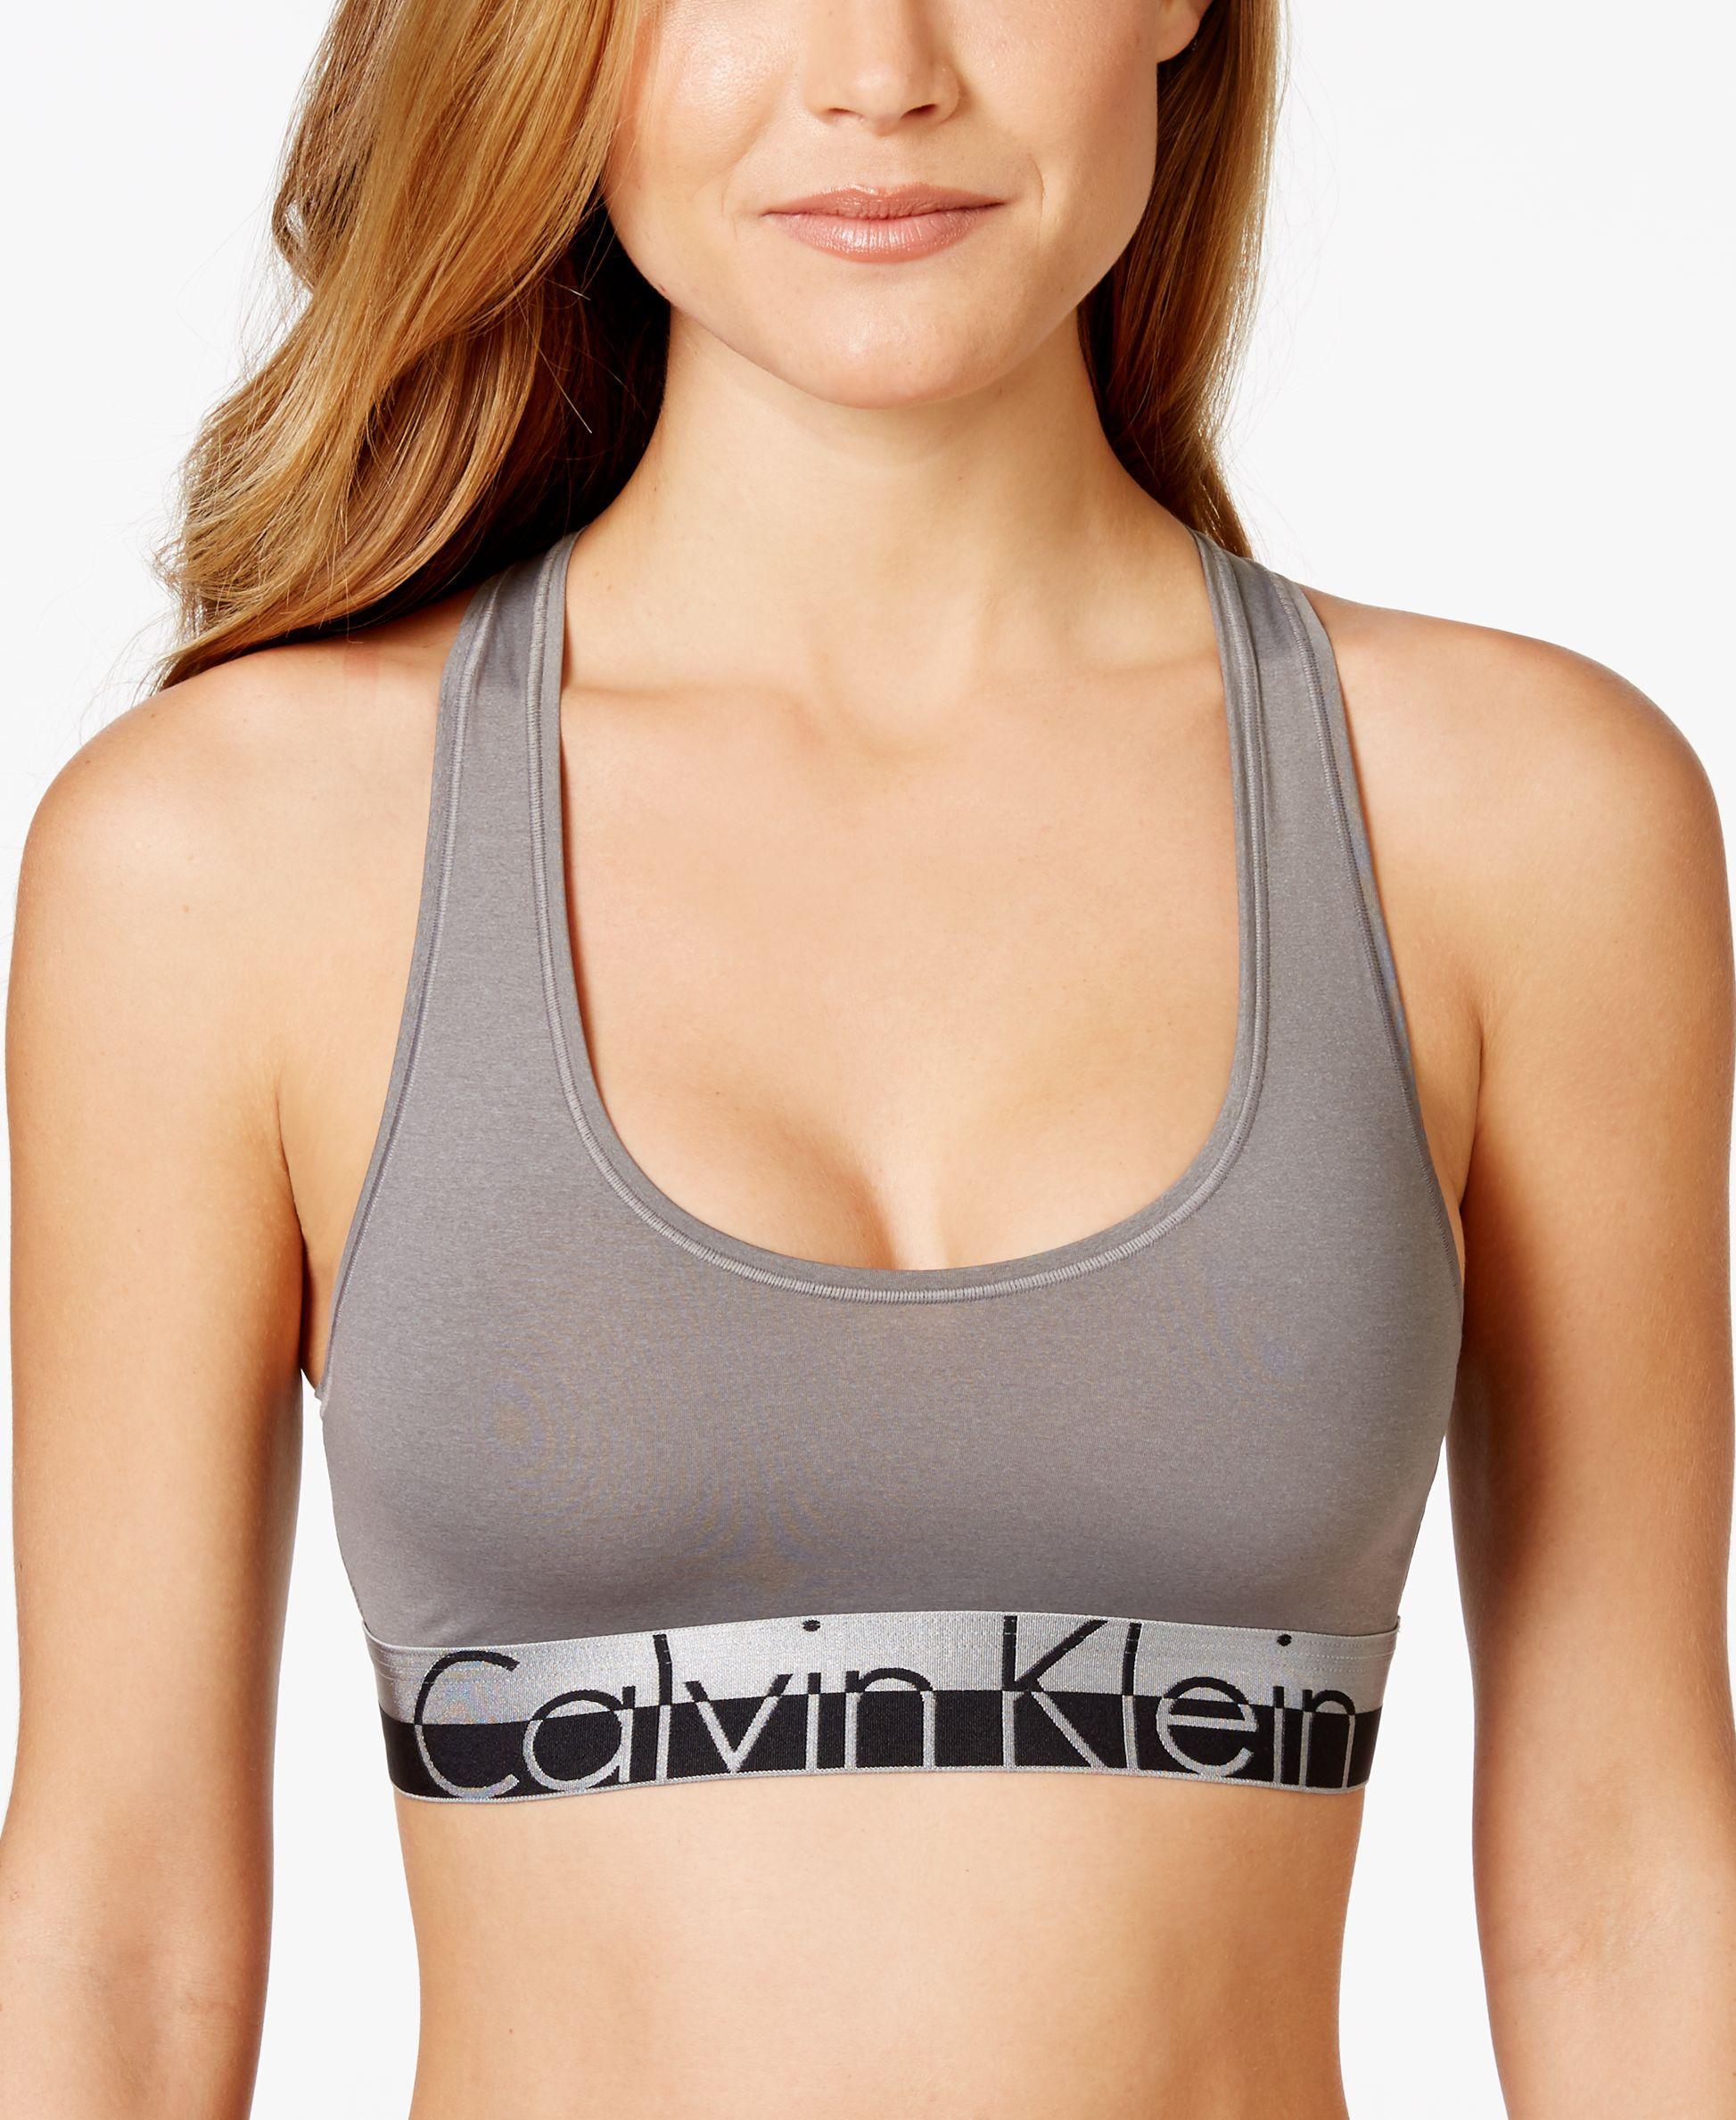 calvin klein magnetic logo bralette qf1335 in gray lyst. Black Bedroom Furniture Sets. Home Design Ideas